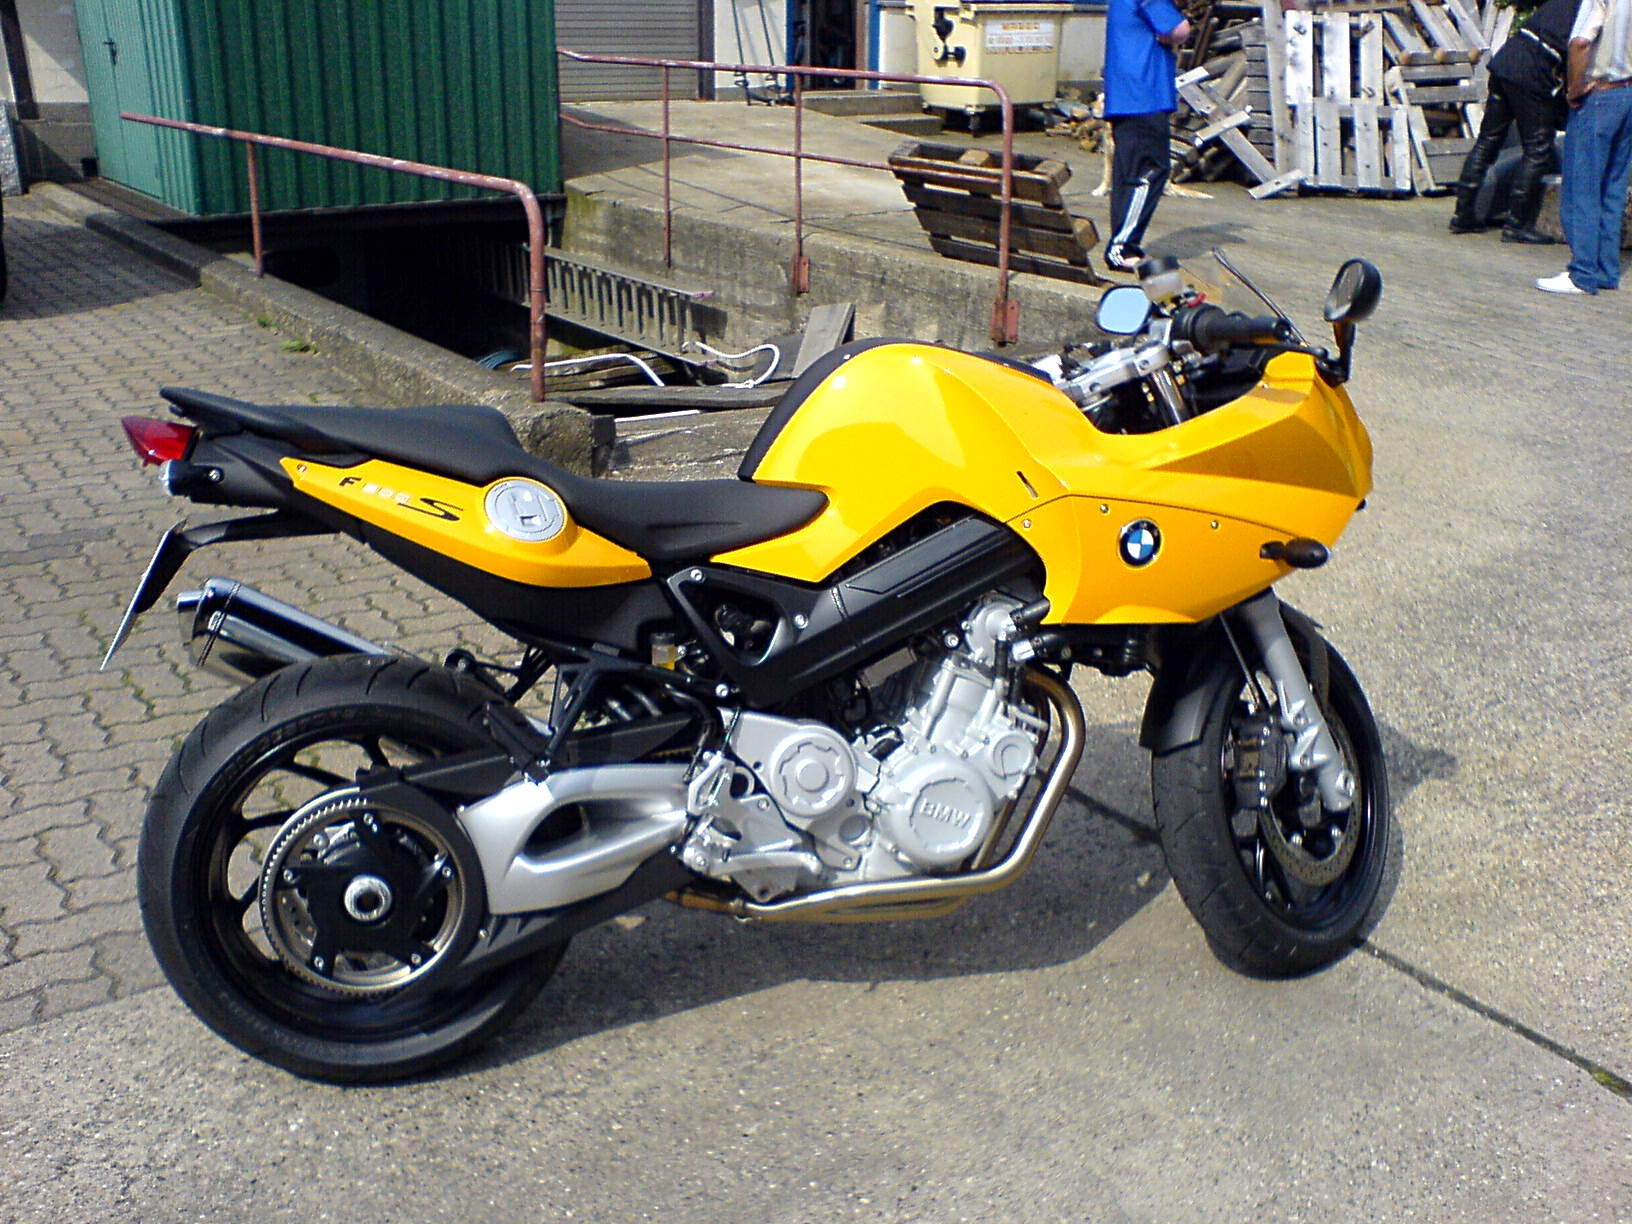 BMW K1200RS 2006 images #7429